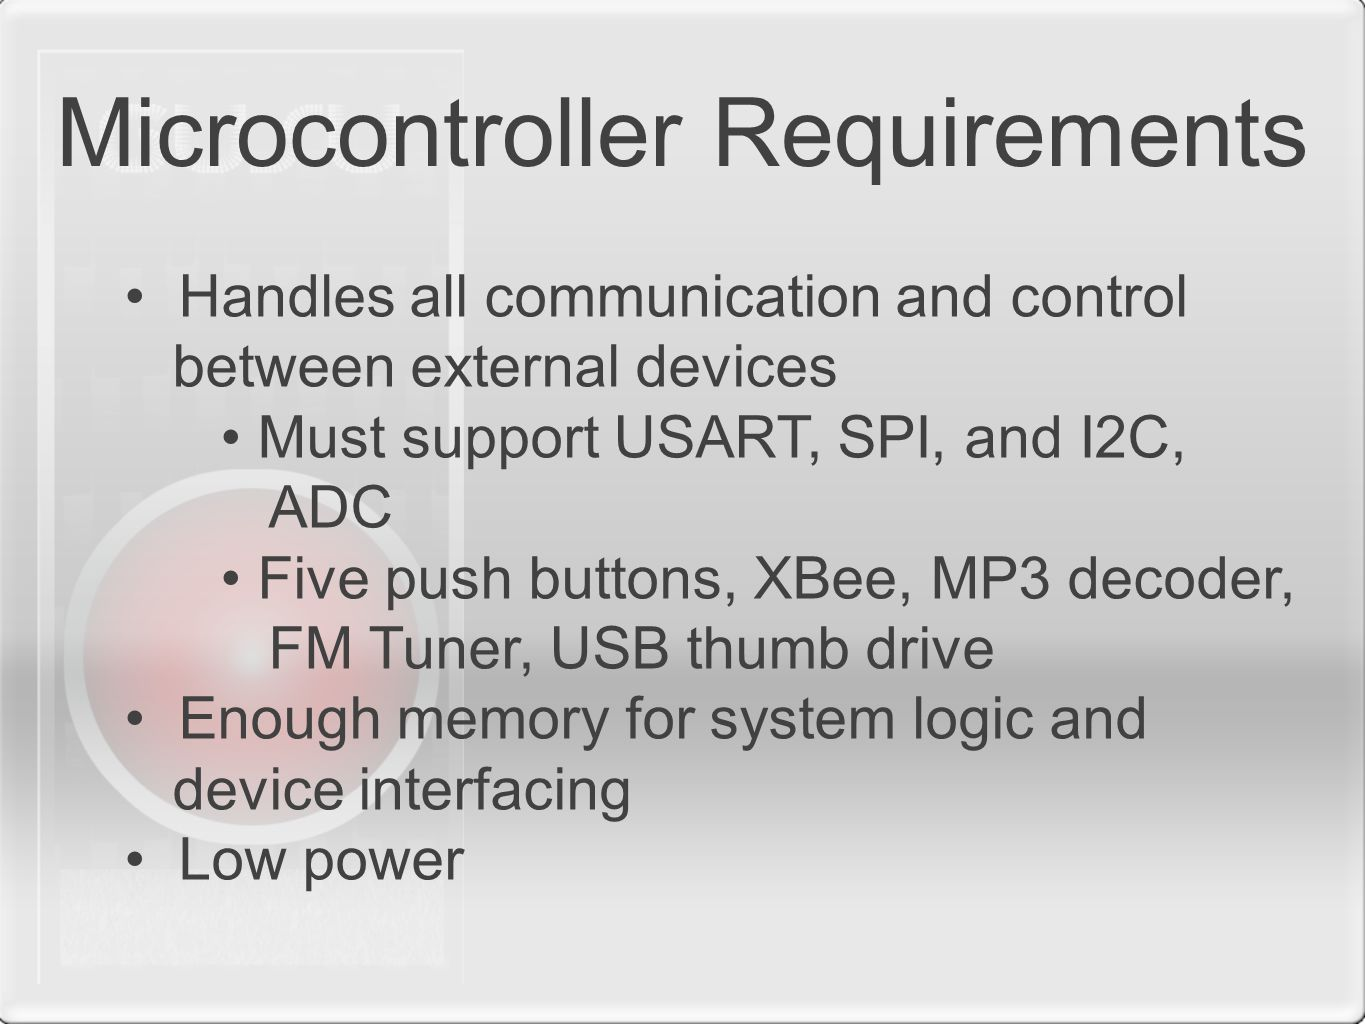 Microcontroller Requirements Handles all communication and control between external devices Must support USART, SPI, and I2C, ADC Five push buttons, XBee, MP3 decoder, FM Tuner, USB thumb drive Enough memory for system logic and device interfacing Low power